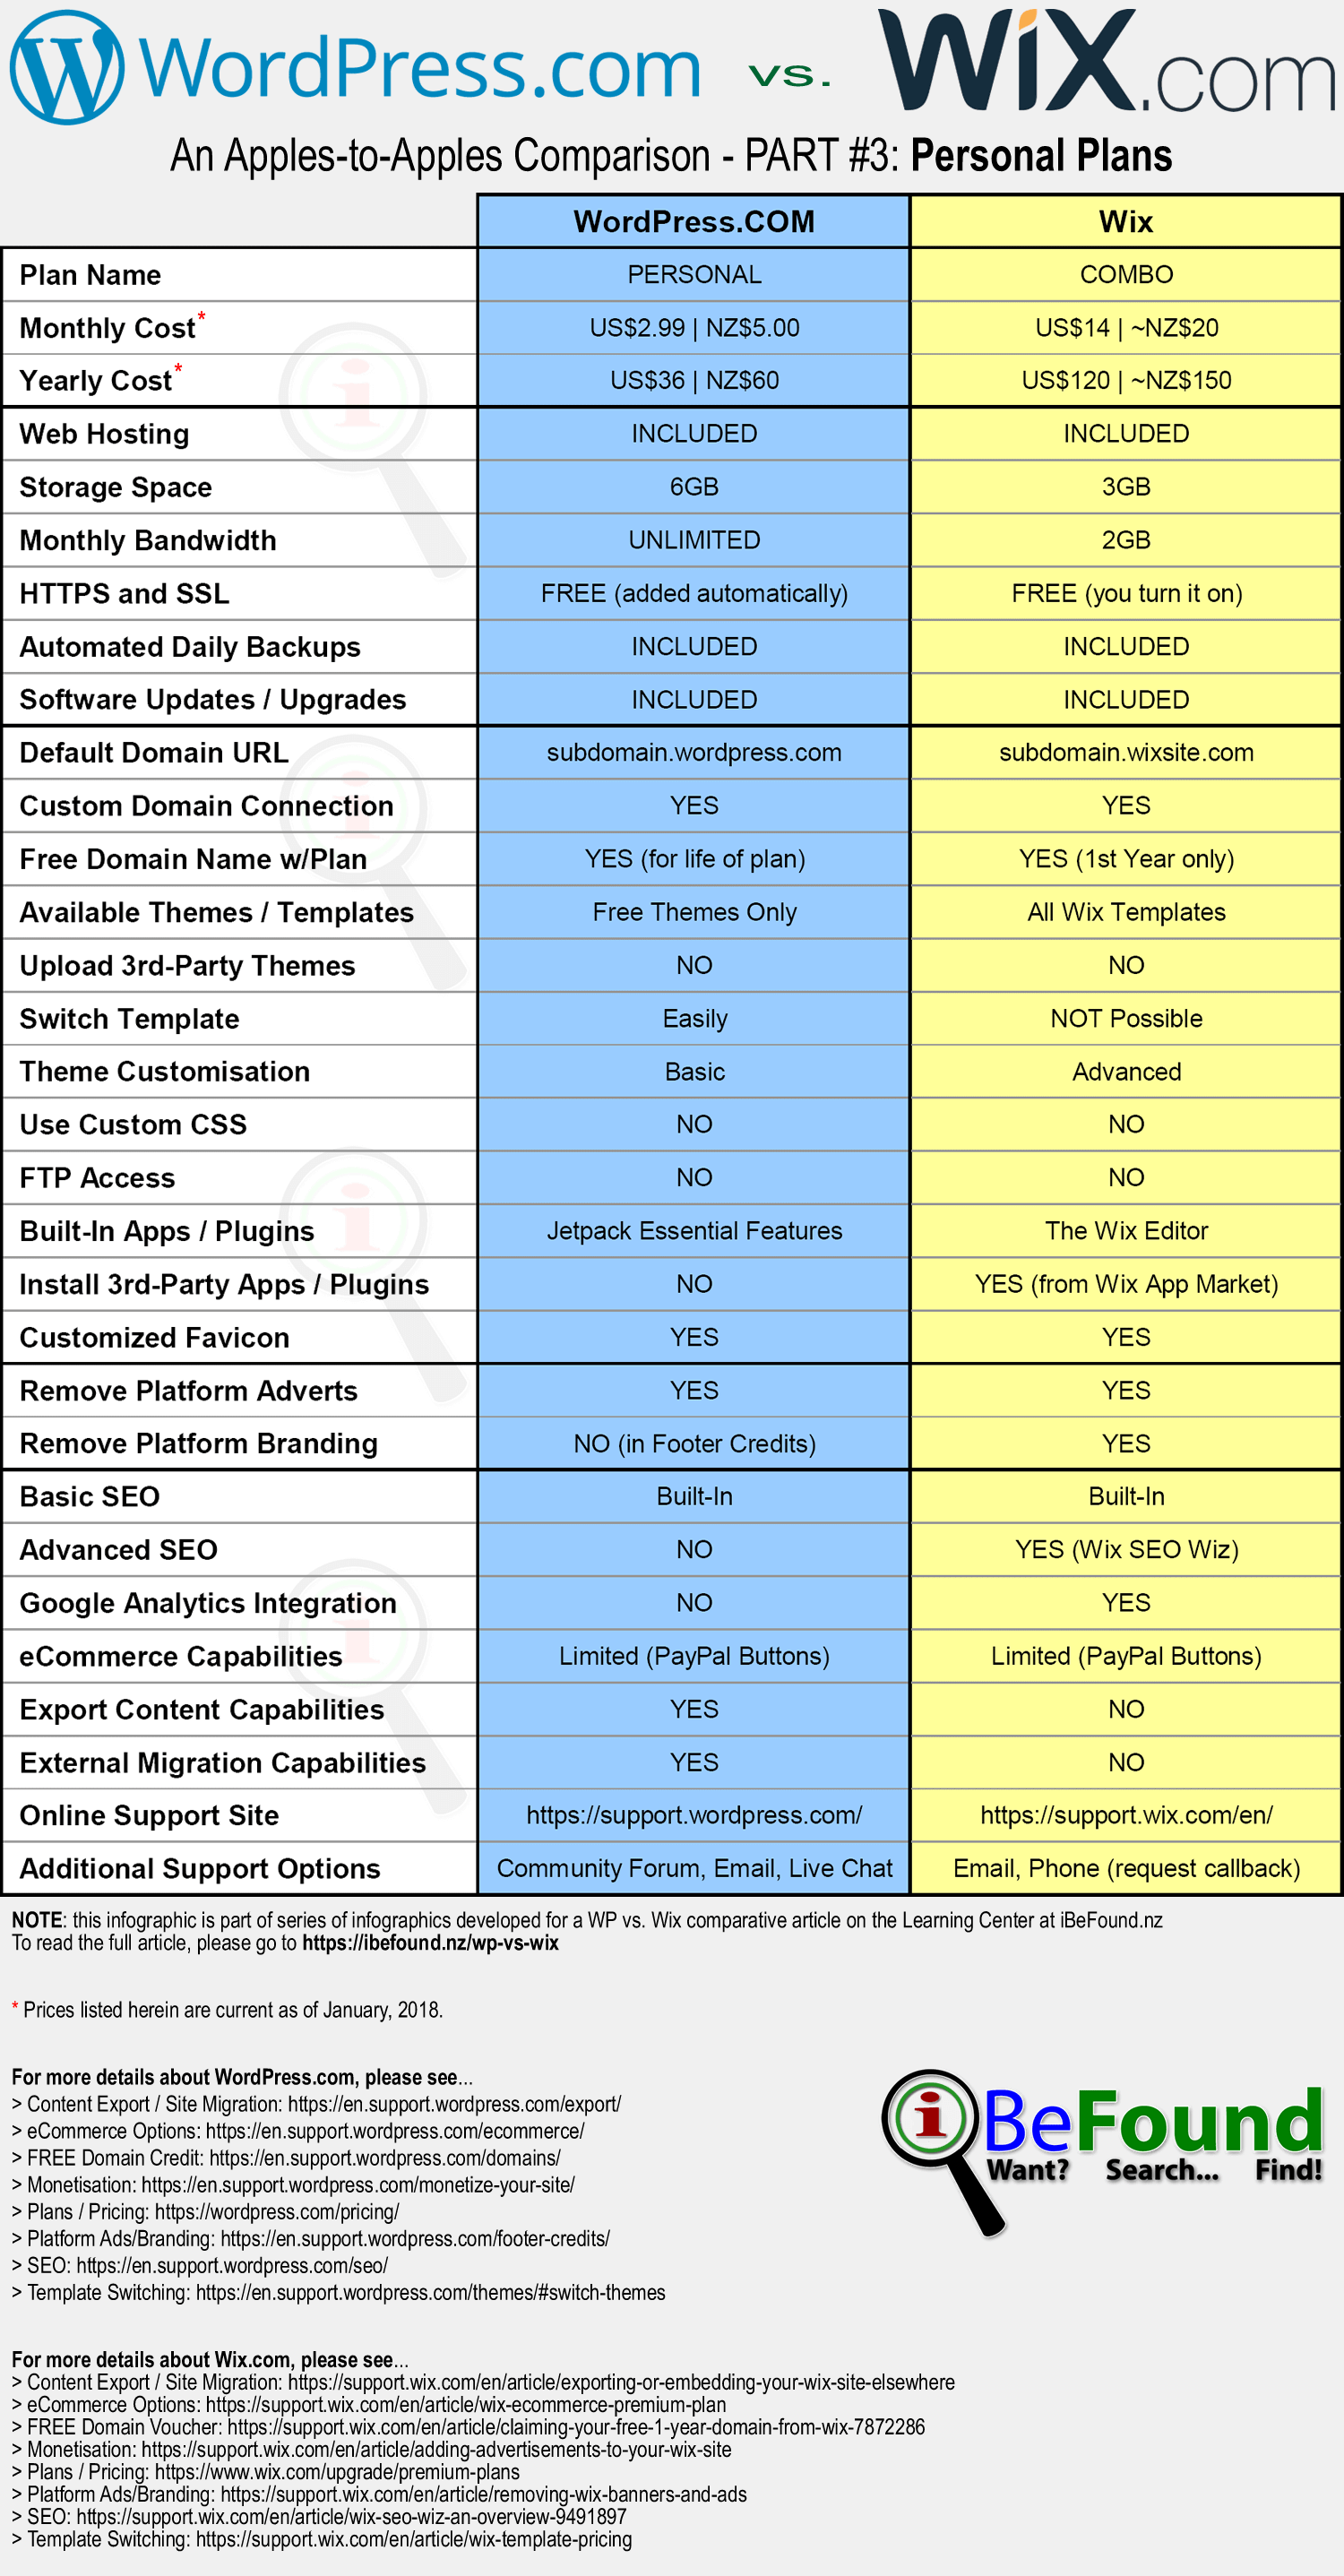 Hosted WordPress Versus Wix Comparison Infographic Pt3 Personal Plans By iBeFound Digital Marketing Division